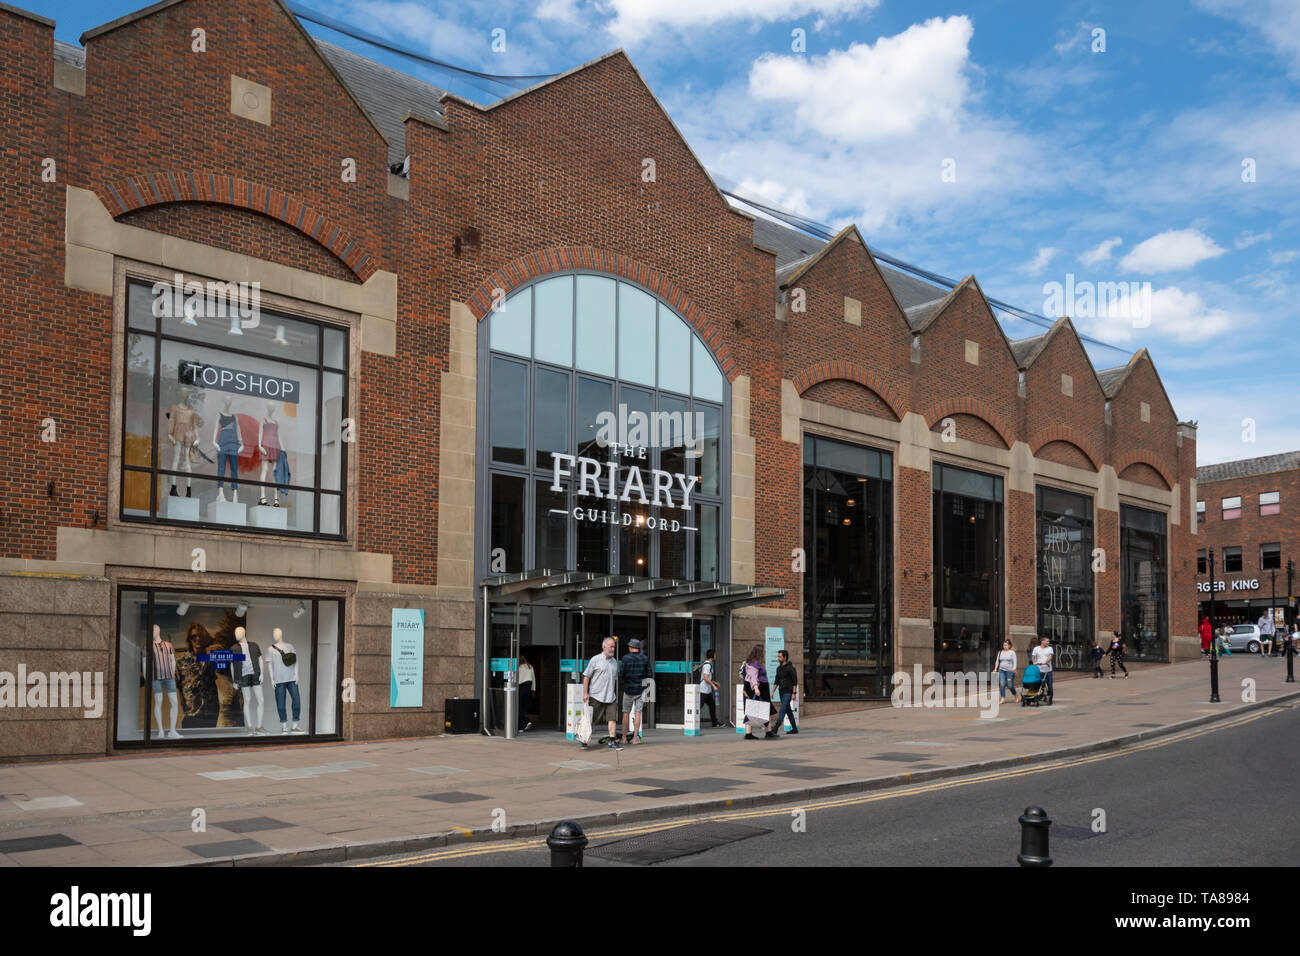 the-friary-exterior-of-the-shopping-mall-in-guildford-town-centre-surrey-uk-TA8984.jpg